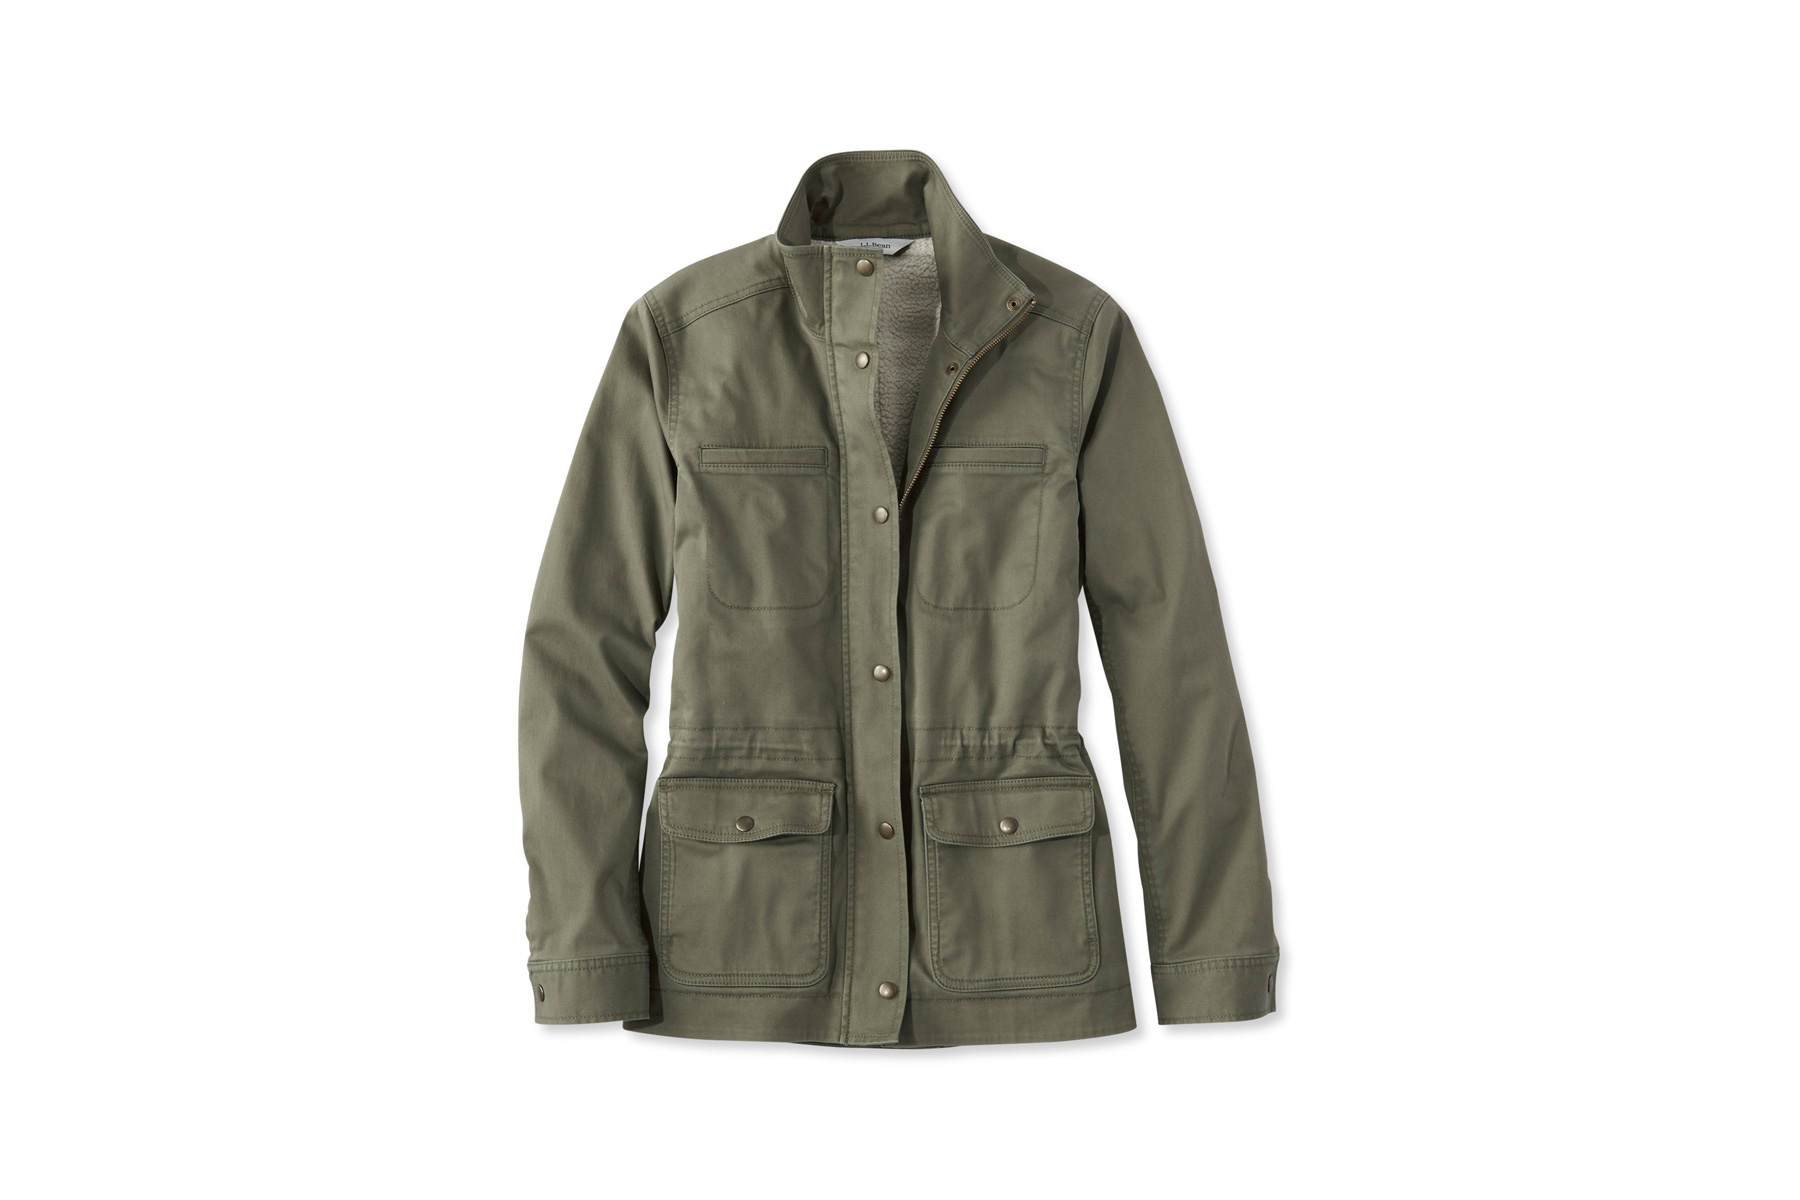 L. L. Bean Classic Sherpa-Lined Utility Jacket